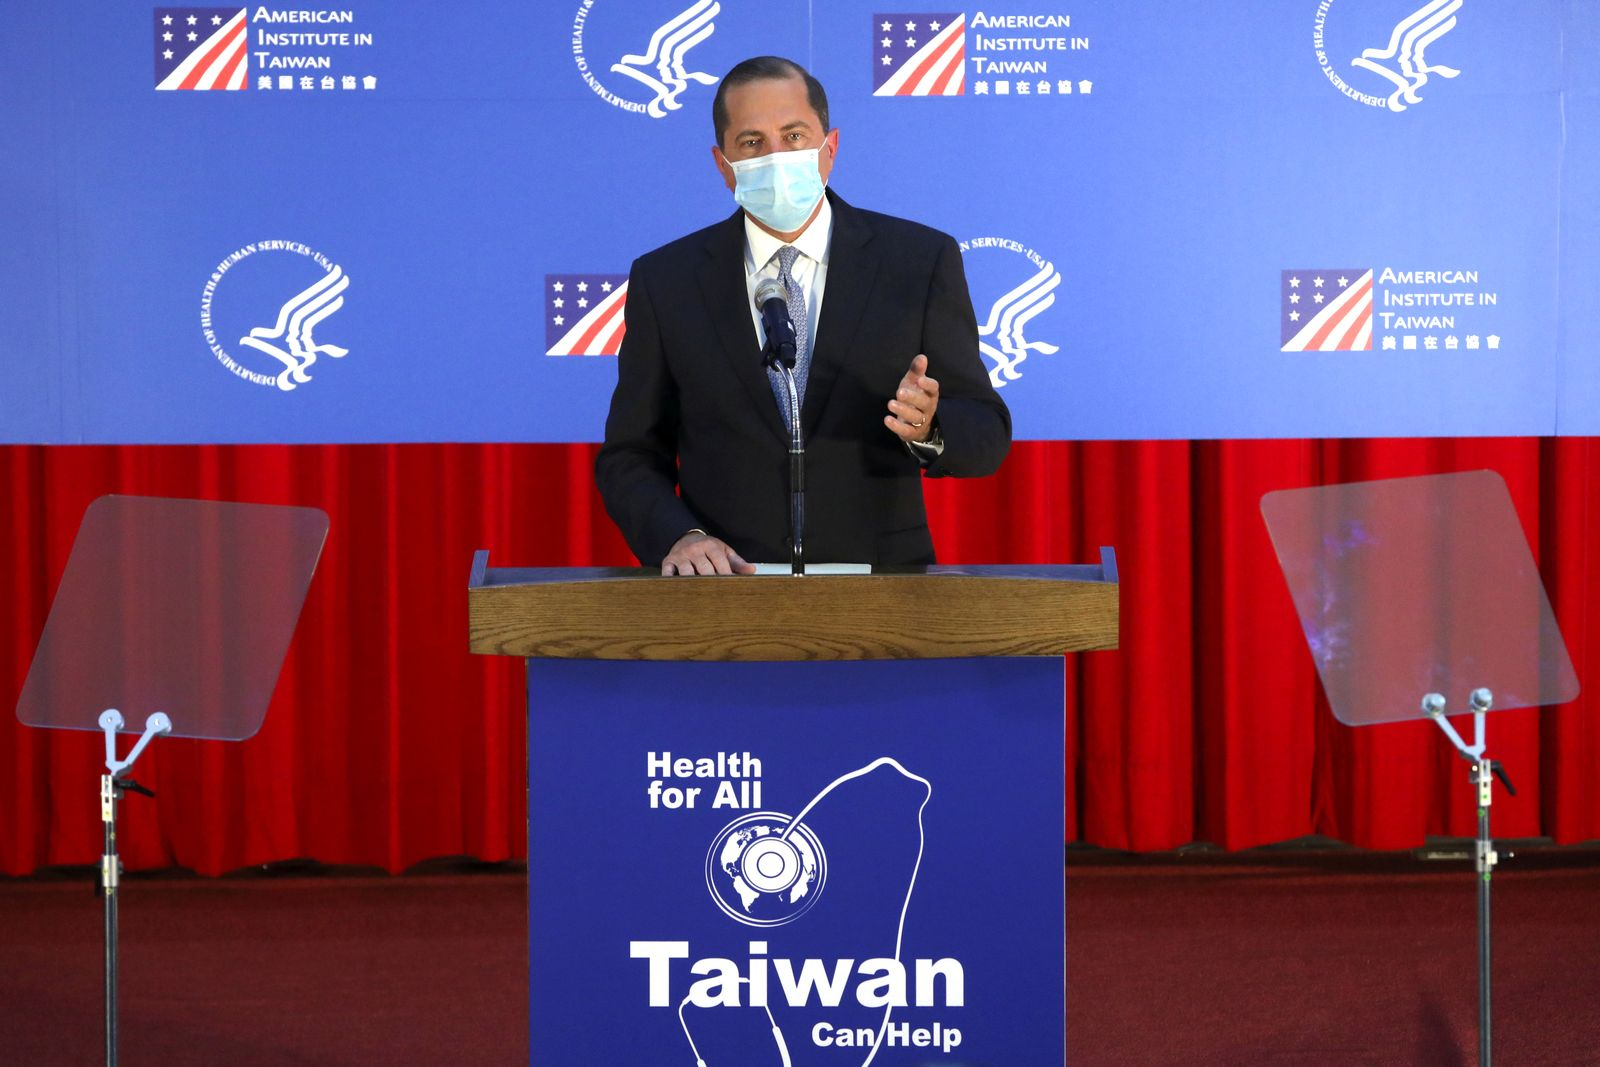 U.S. Secretary of Health and Human Services Alex Azar gives a speech at a university in Taipei,